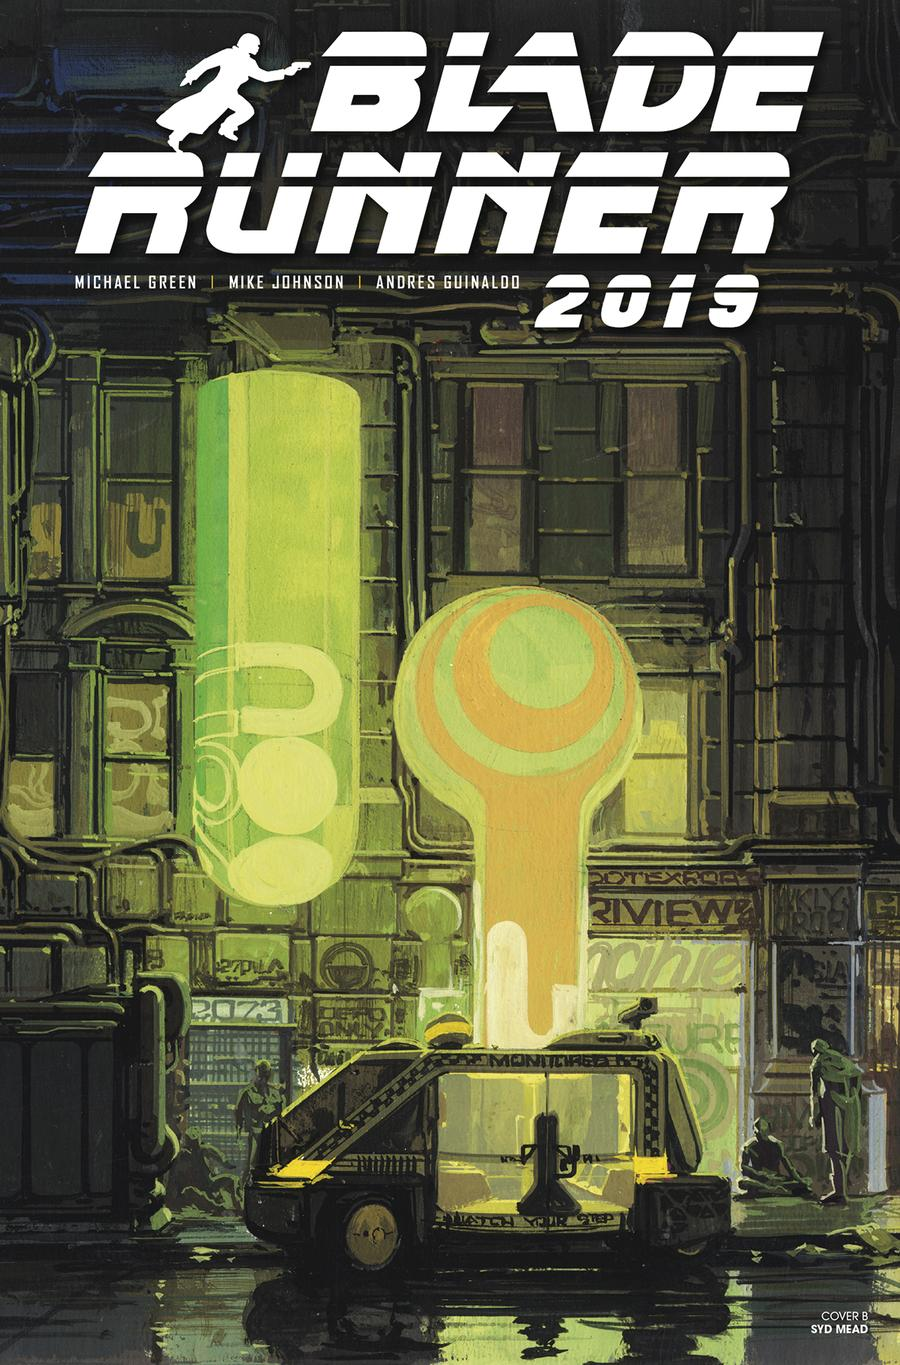 Blade Runner 2019 #5 Cover B Variant Syd Mead Cover